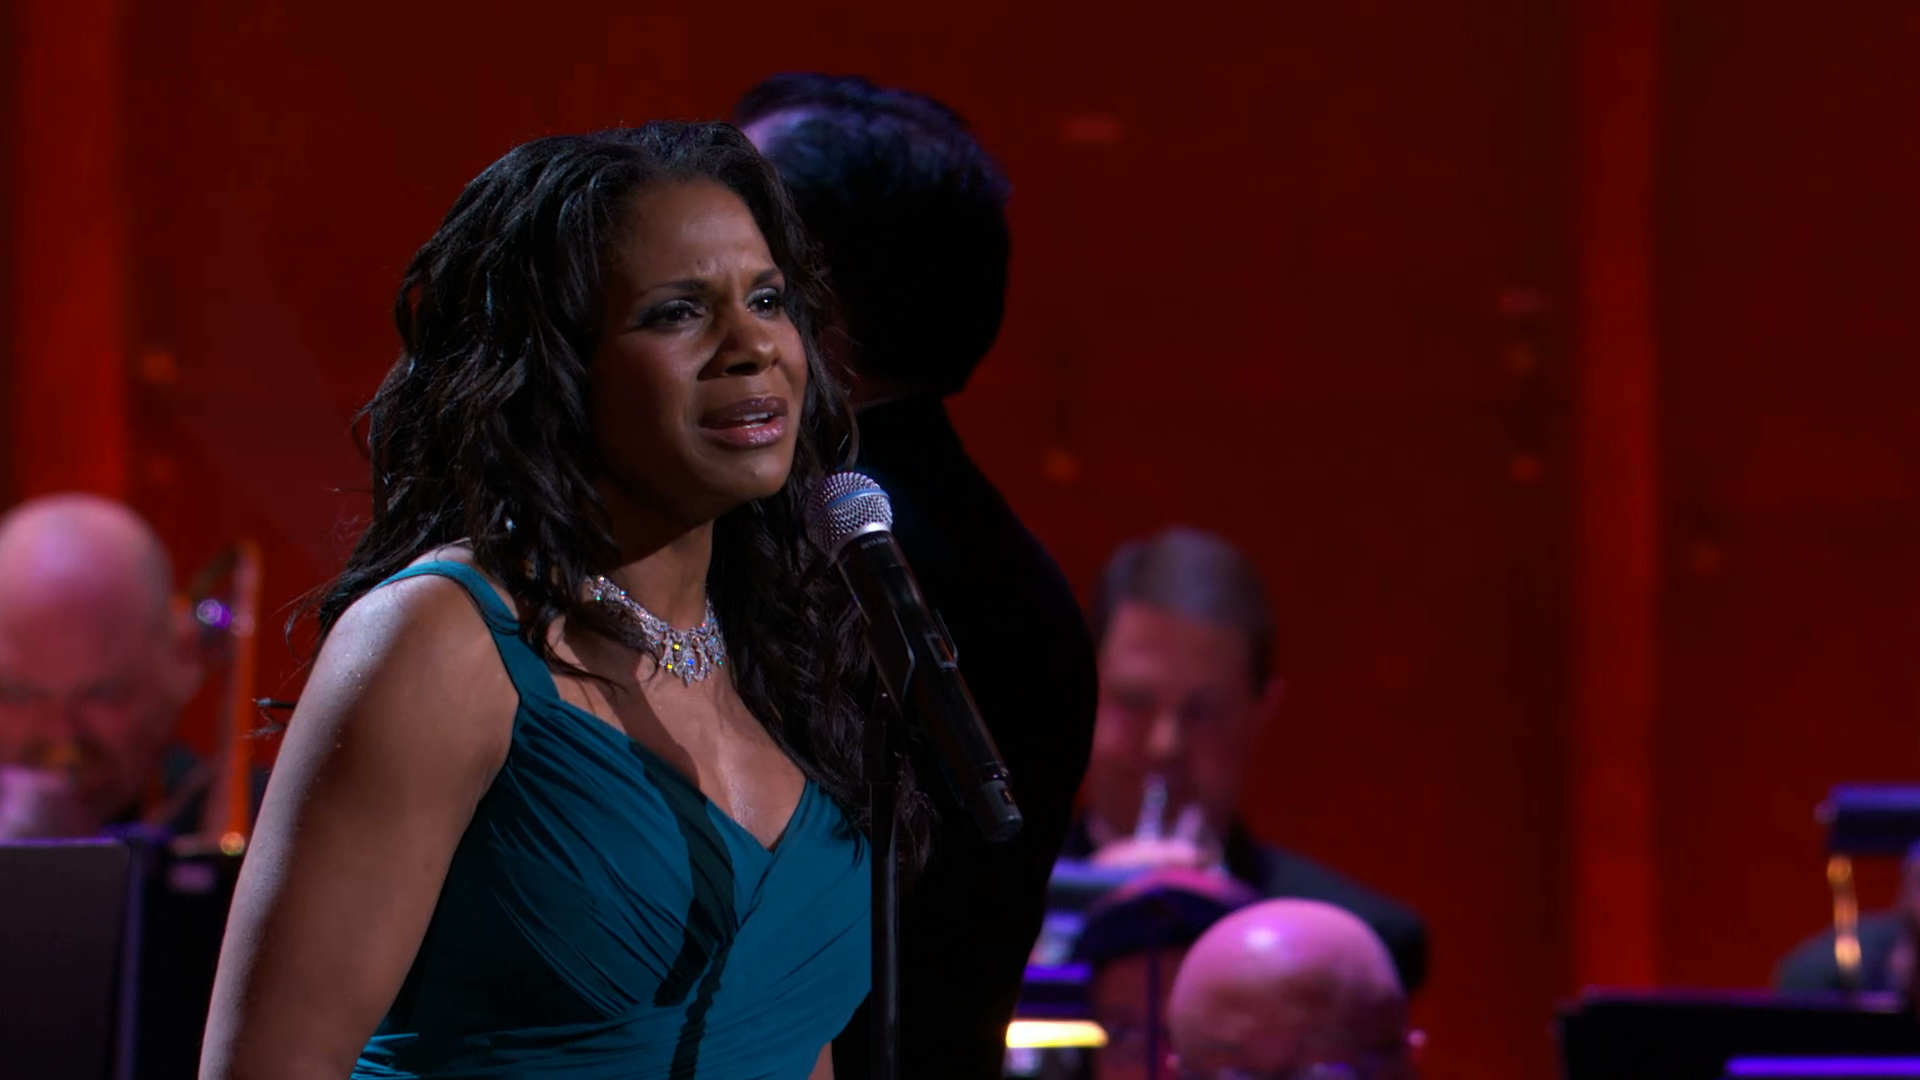 Audra McDonald in Concert: Go Back Home